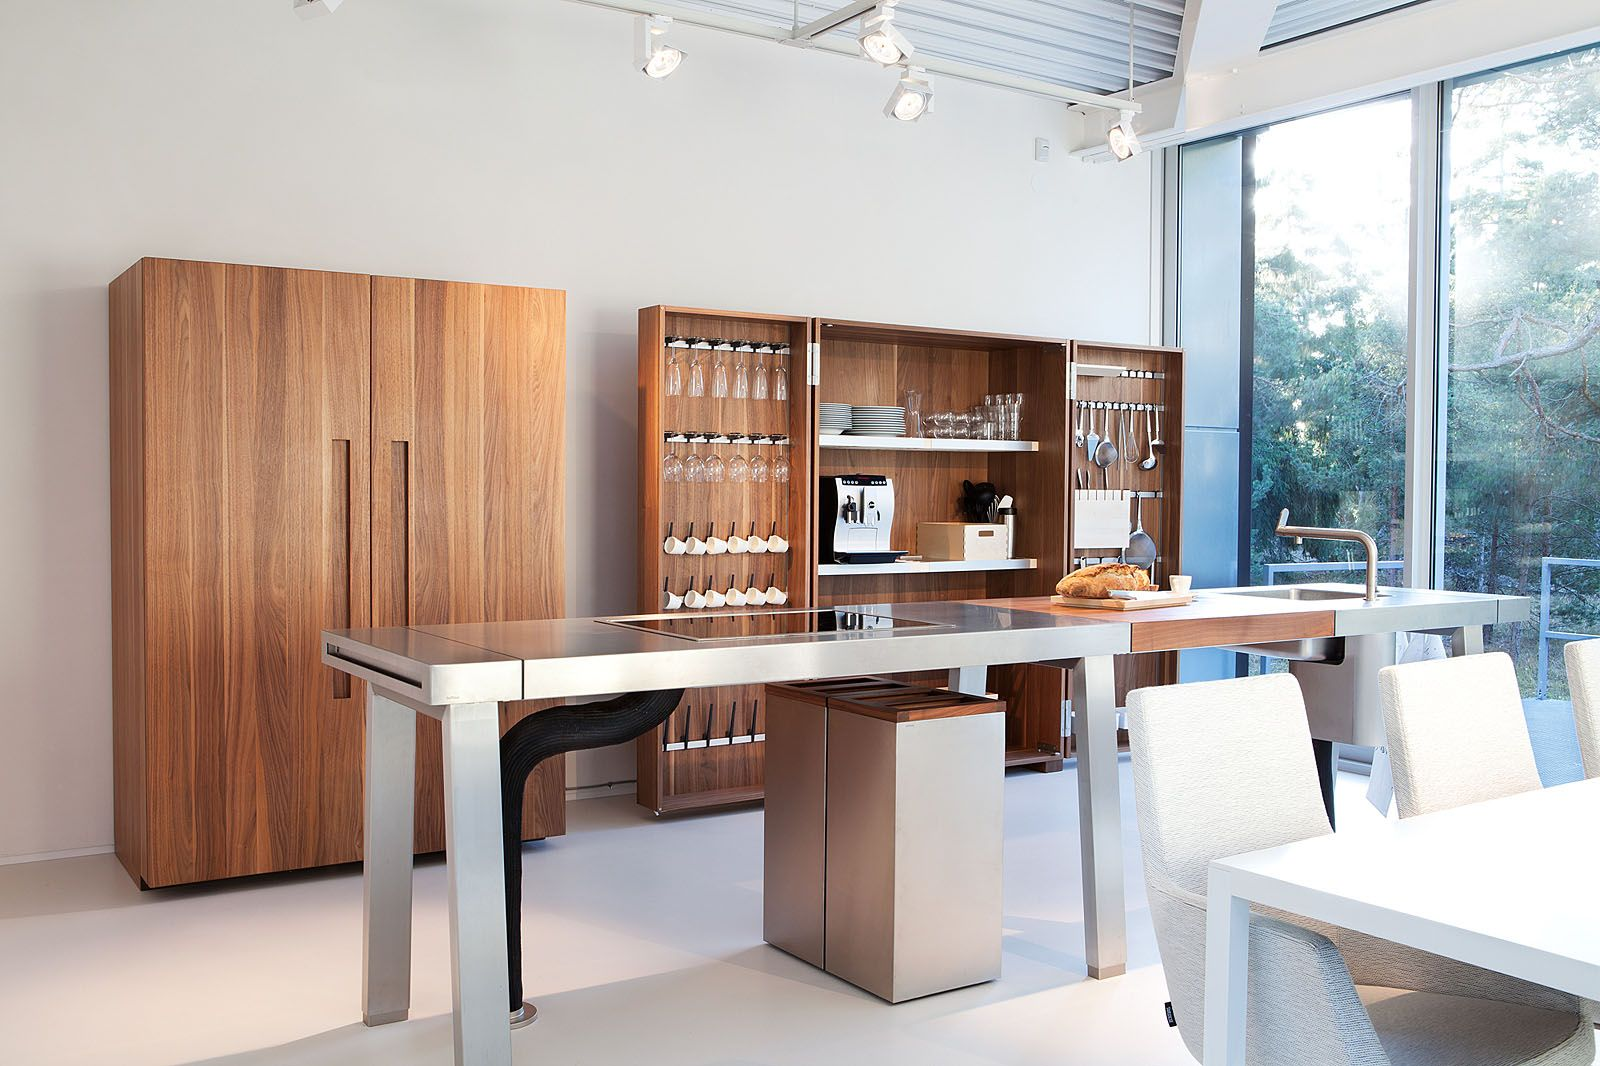 Modern kitchen wood stainless steel open spaces shelving